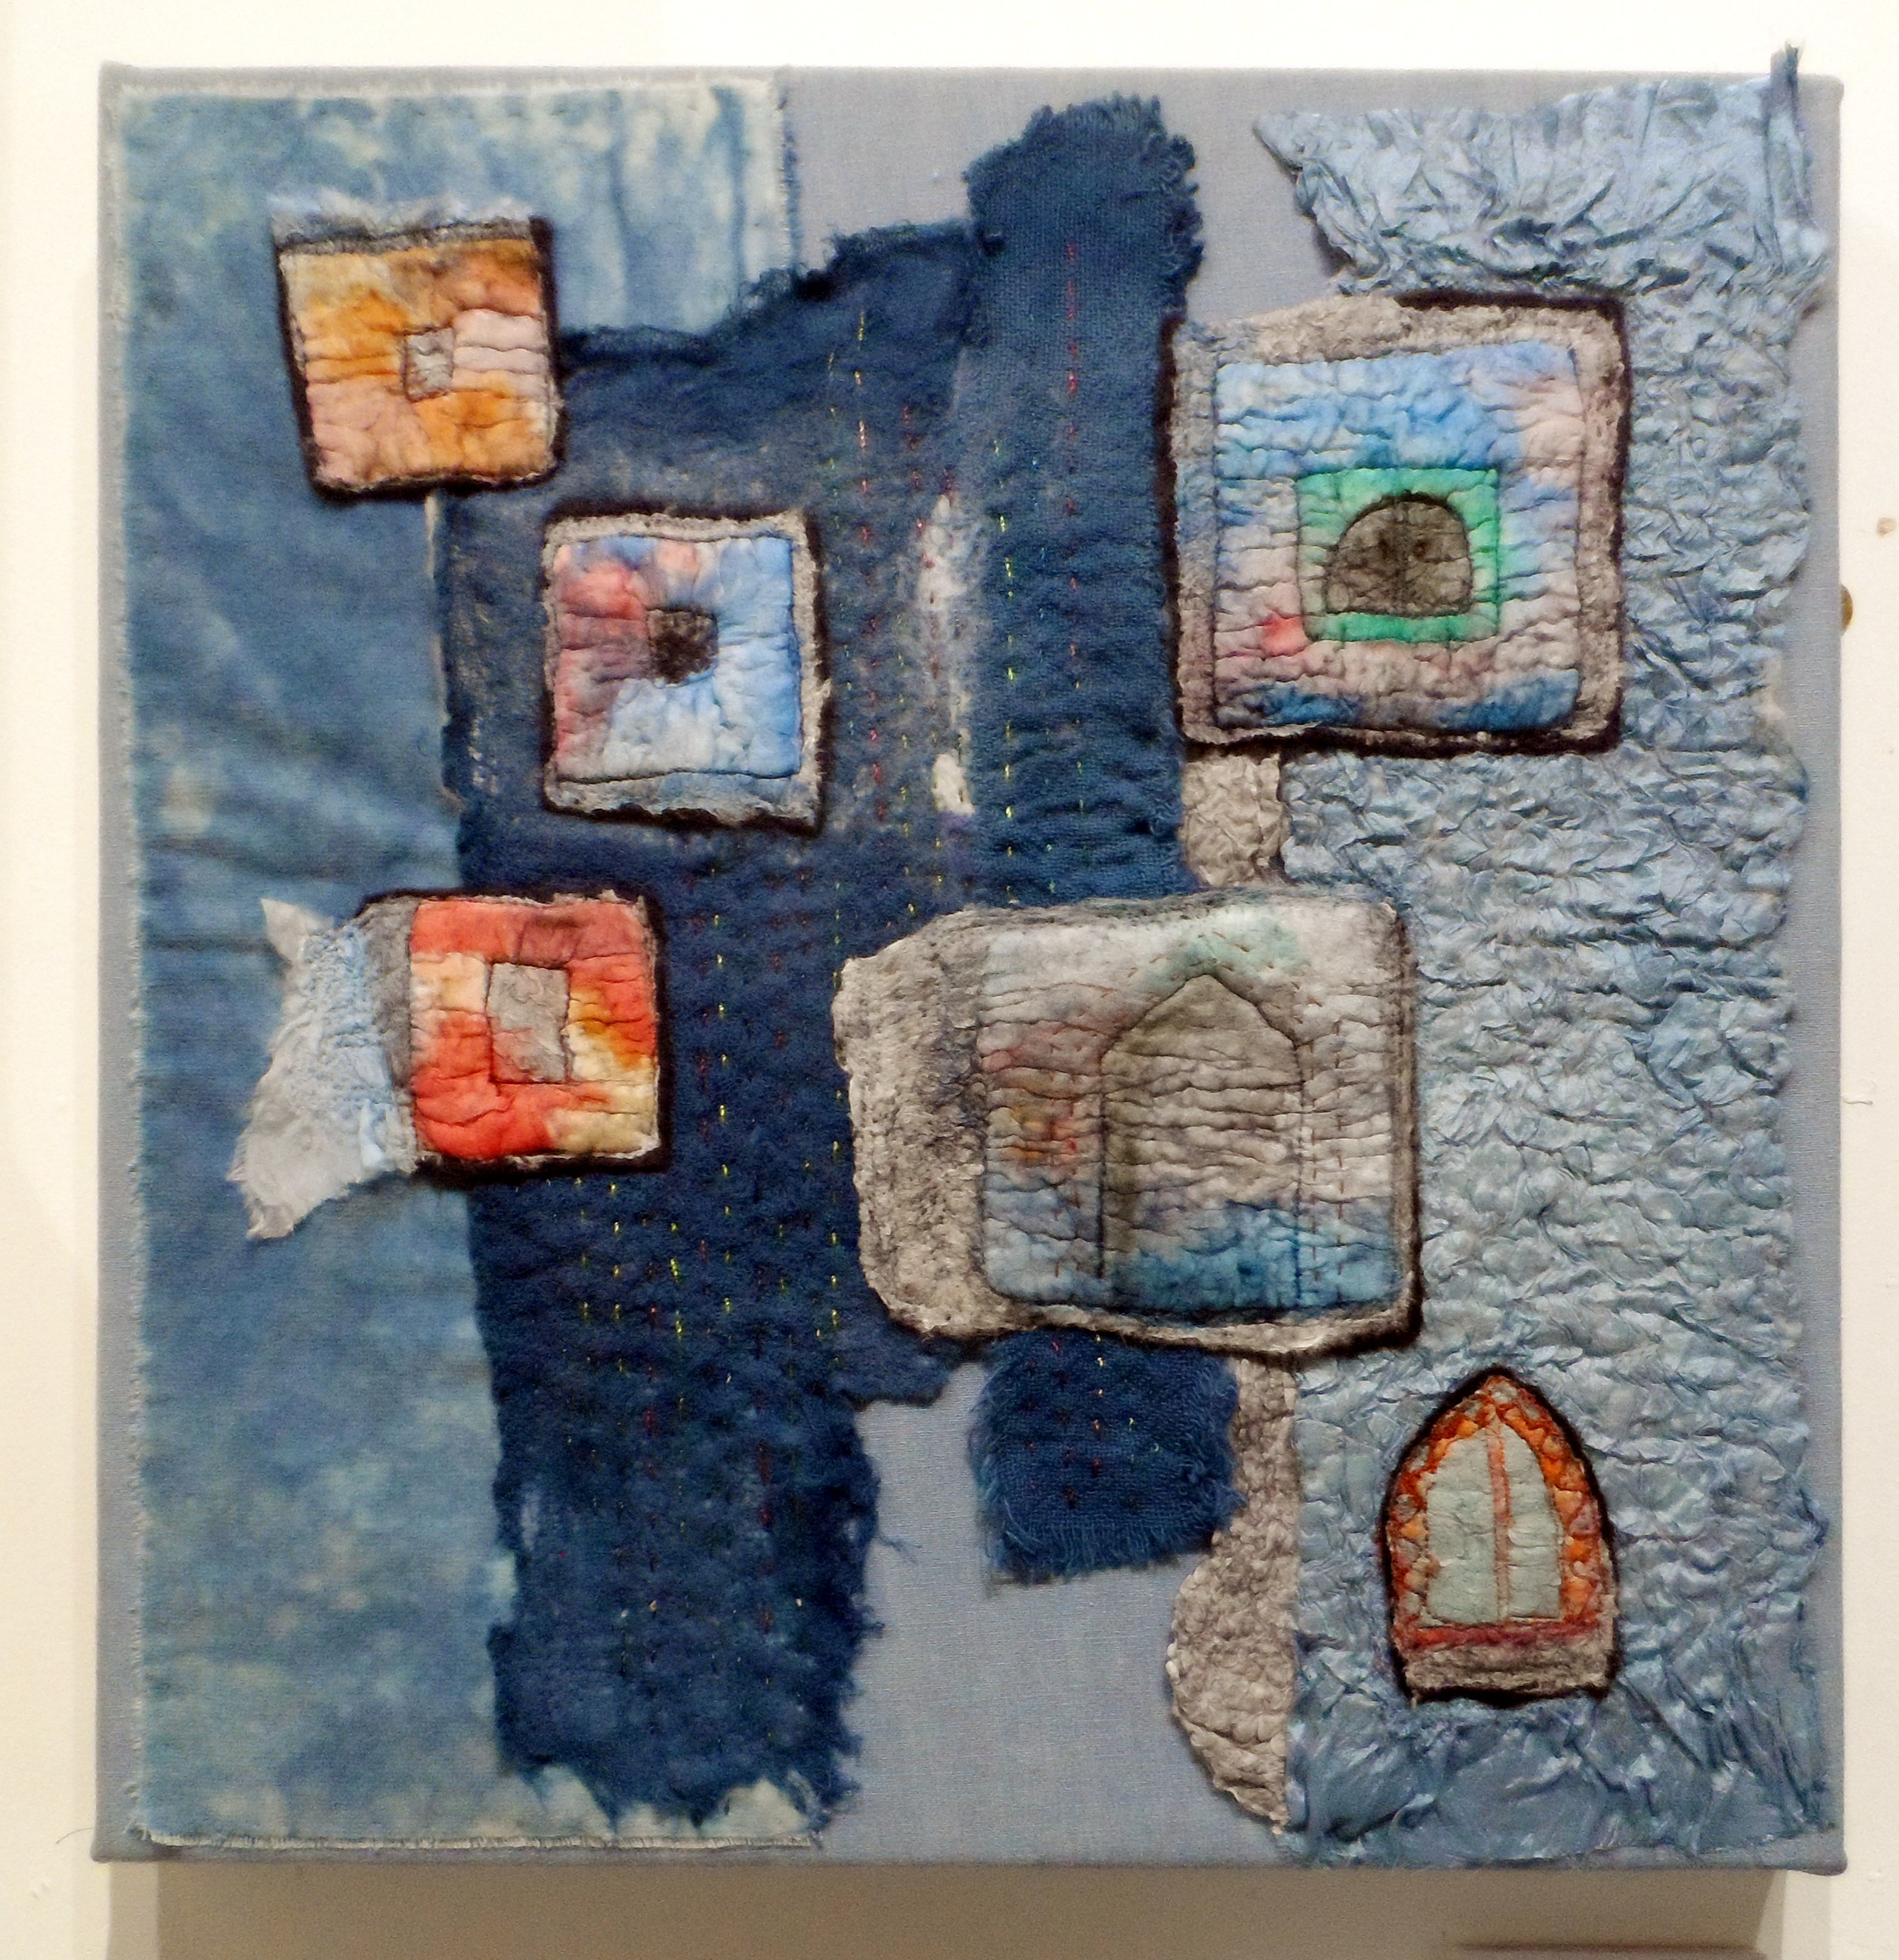 BLUE CITY by Rosey Paul, Re-View Textile Group, Frodsham 2019